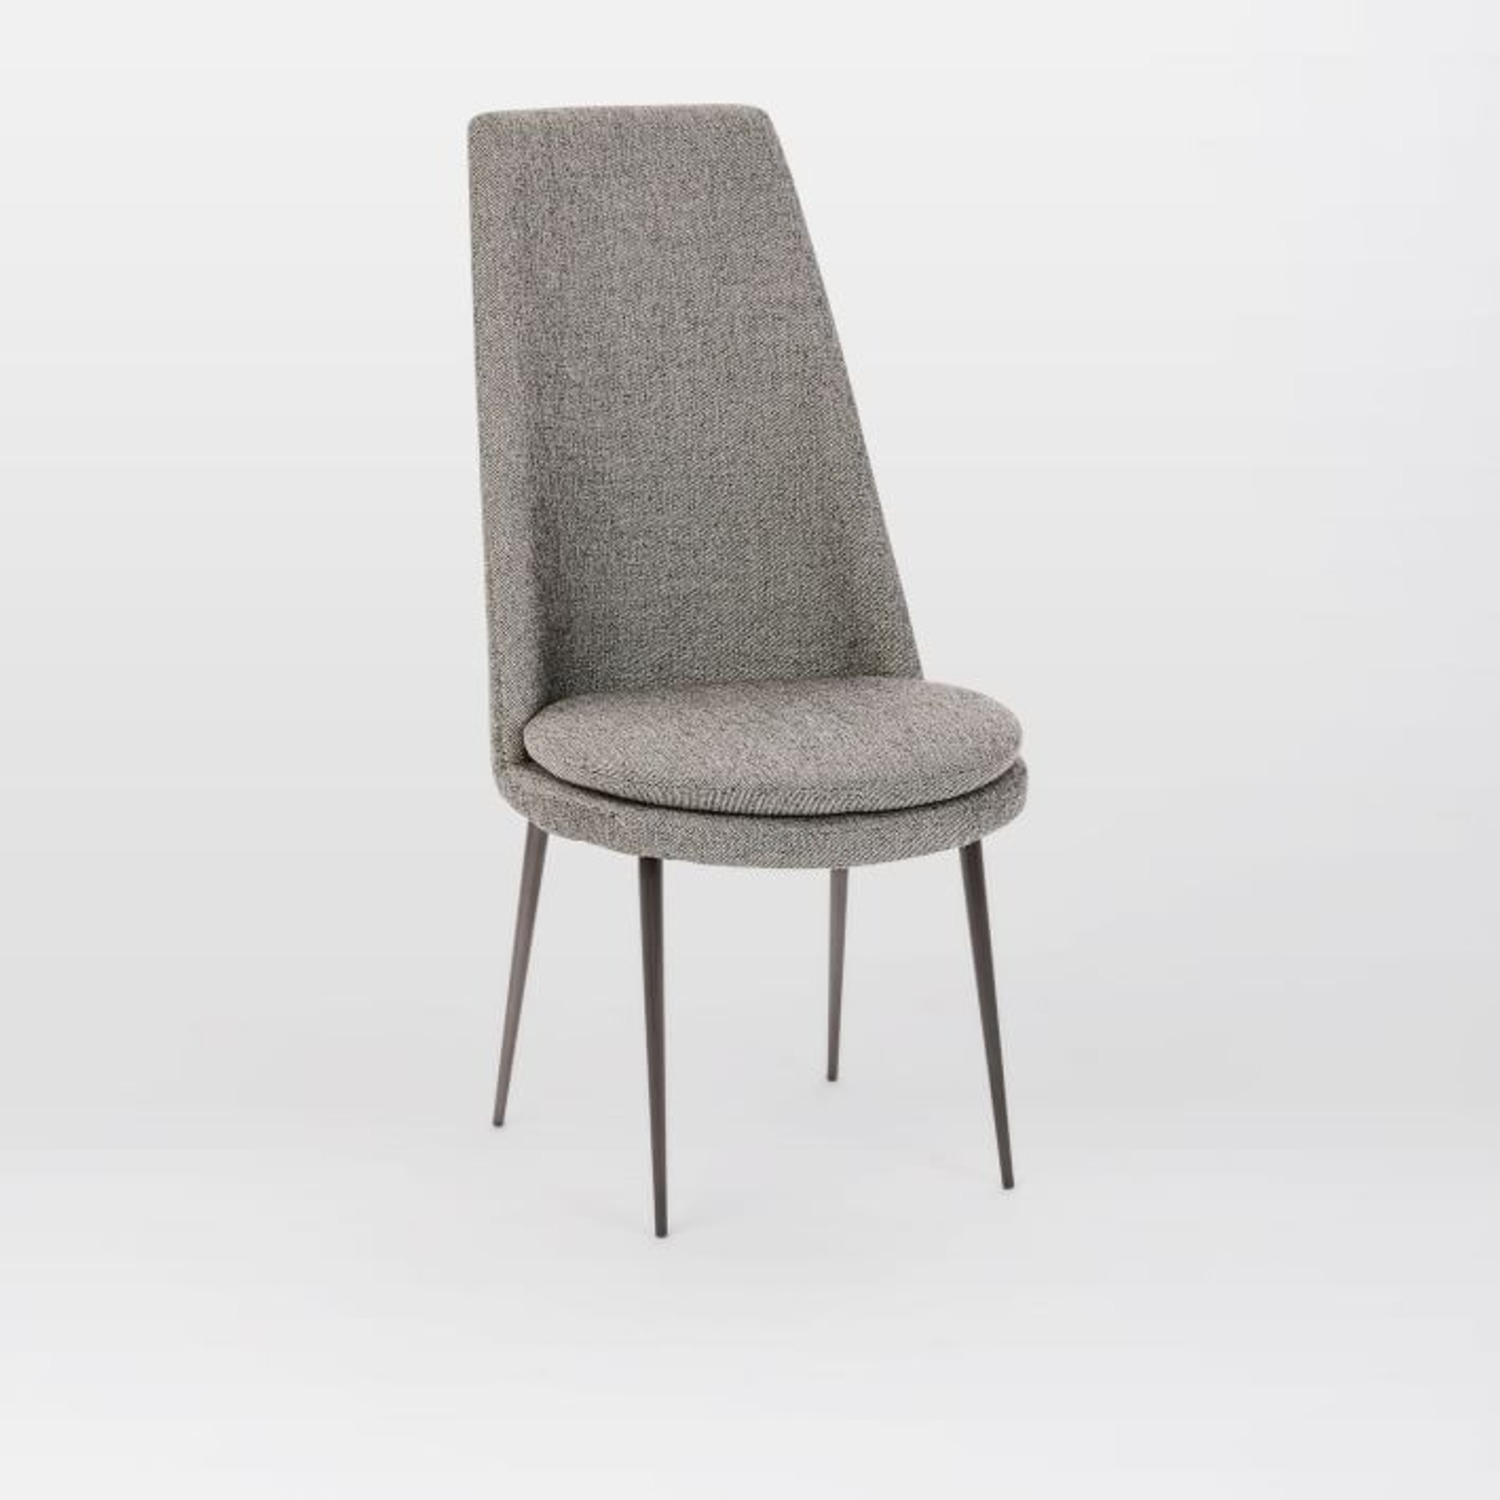 West Elm Finley High-Back Upholstered Dining Chair - image-1